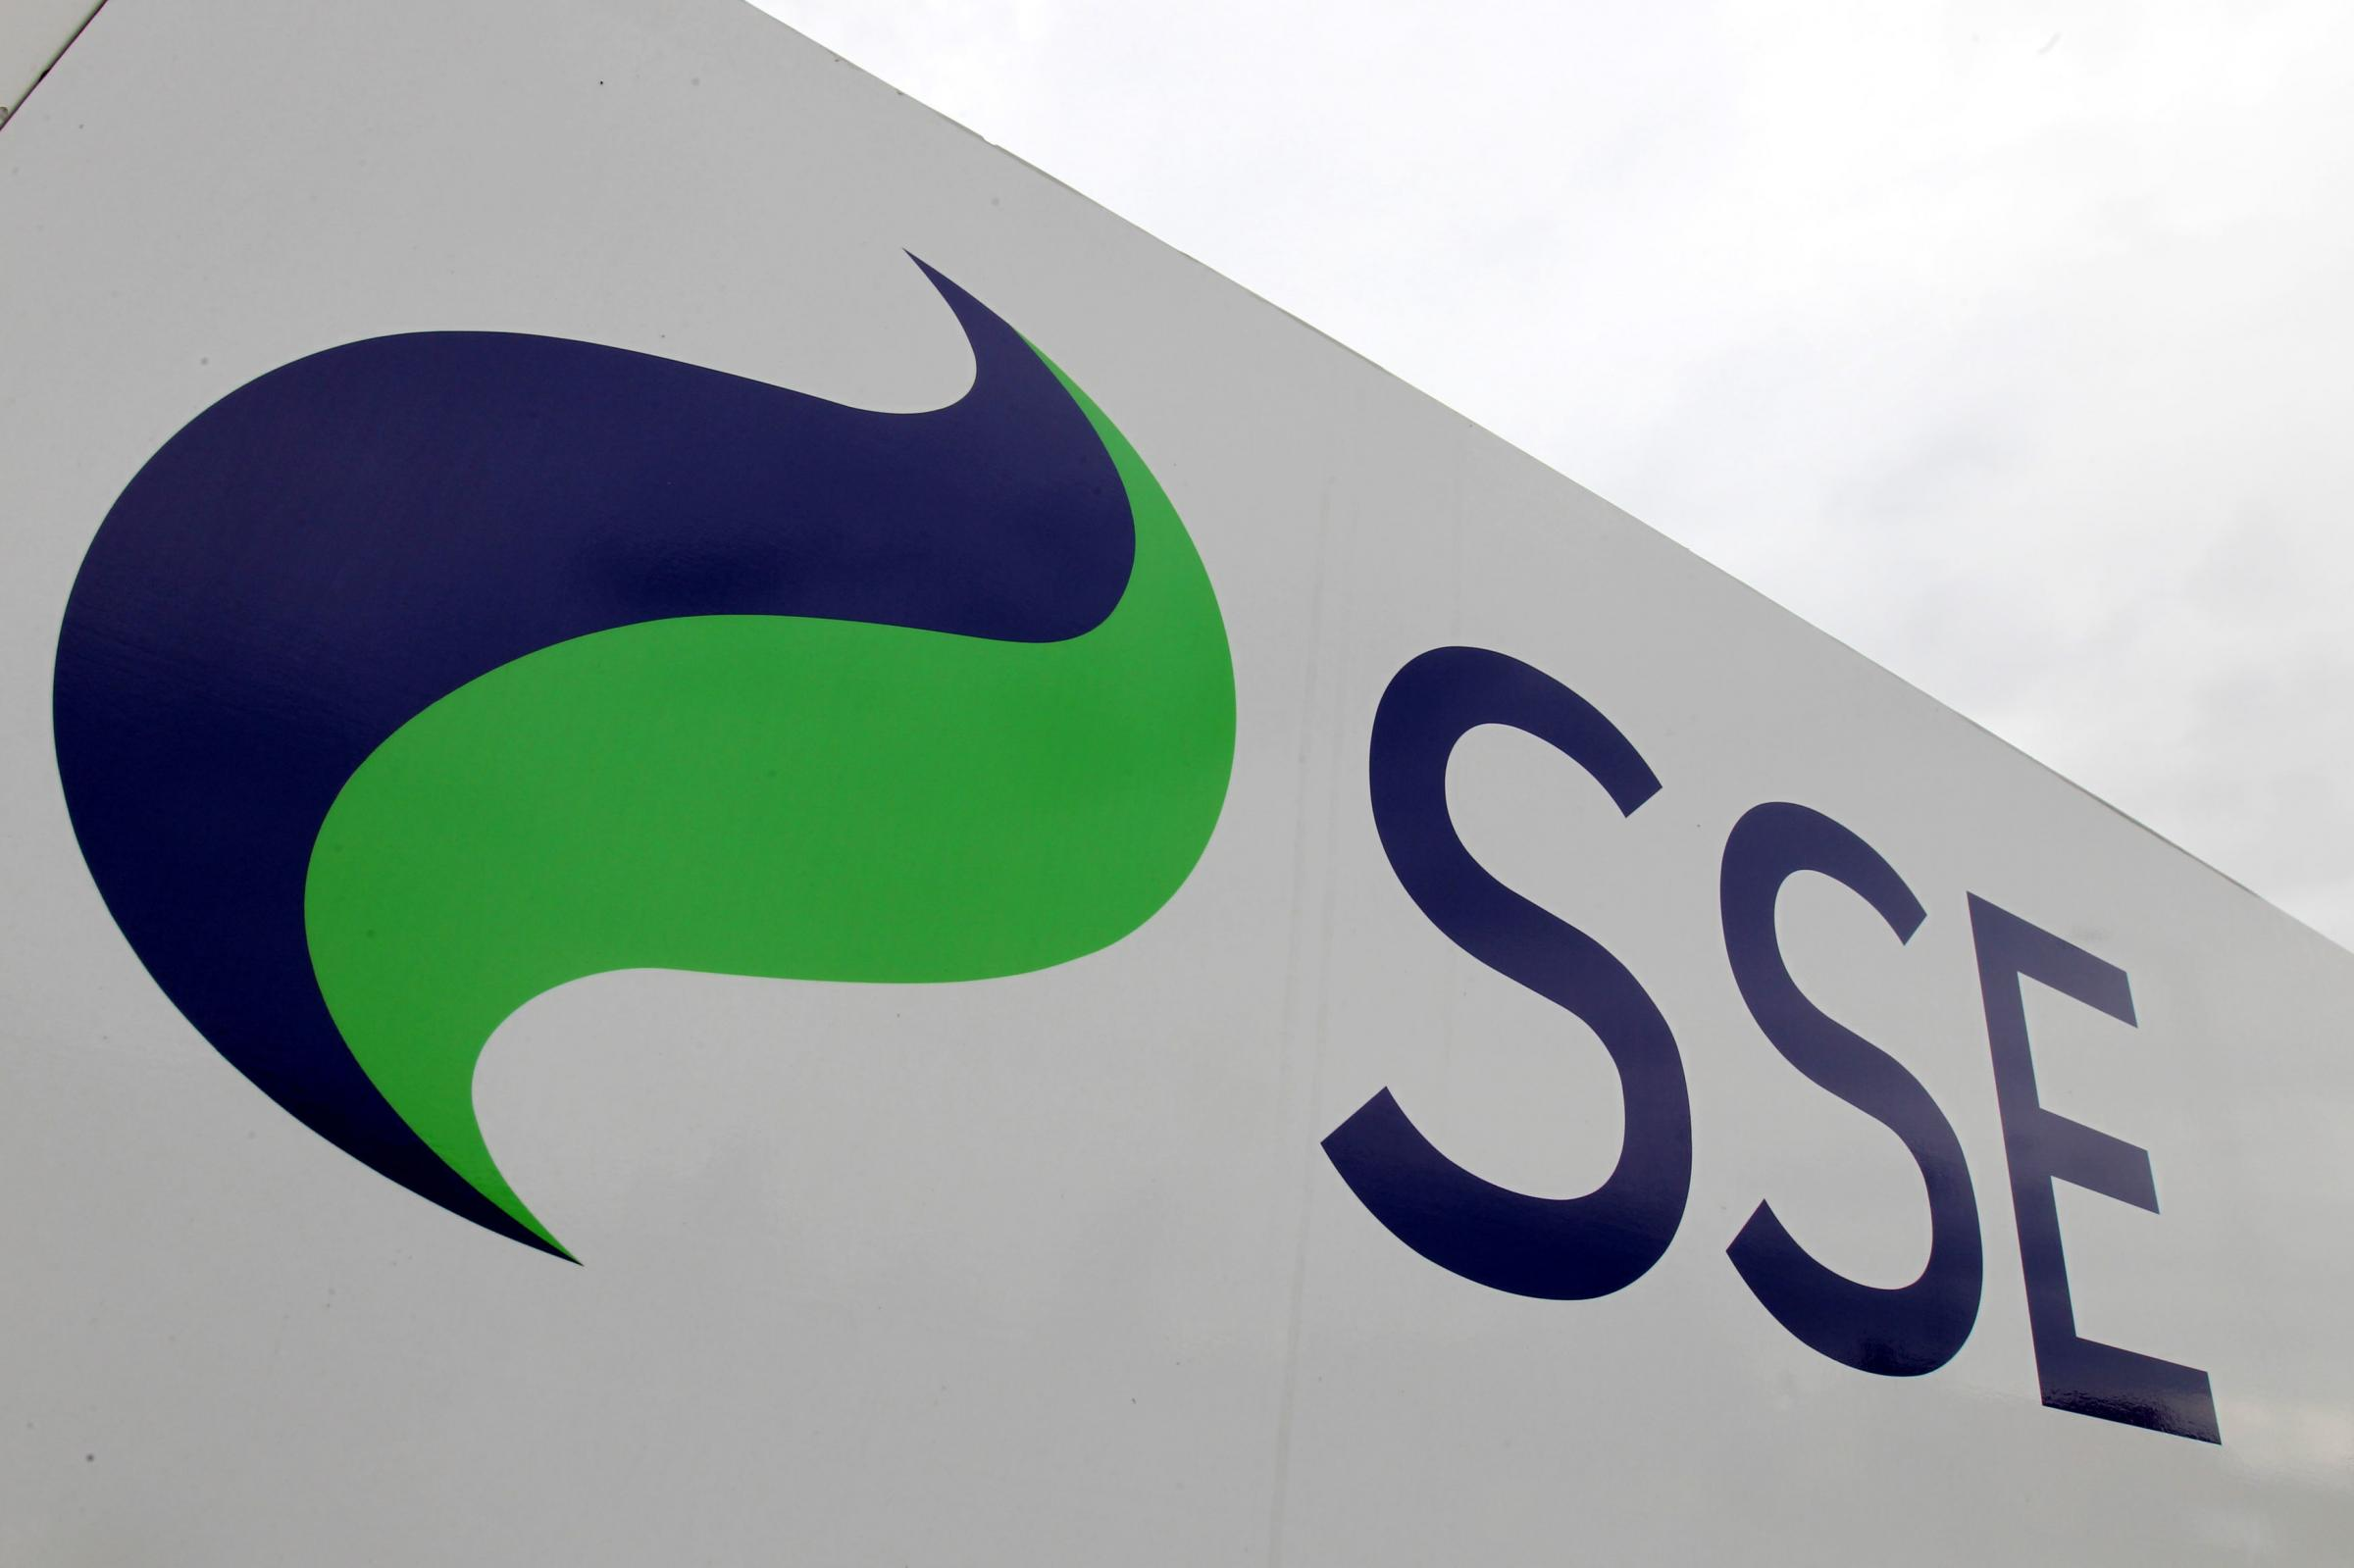 SSE has cut its earnings outlook following the collapse of a major merger